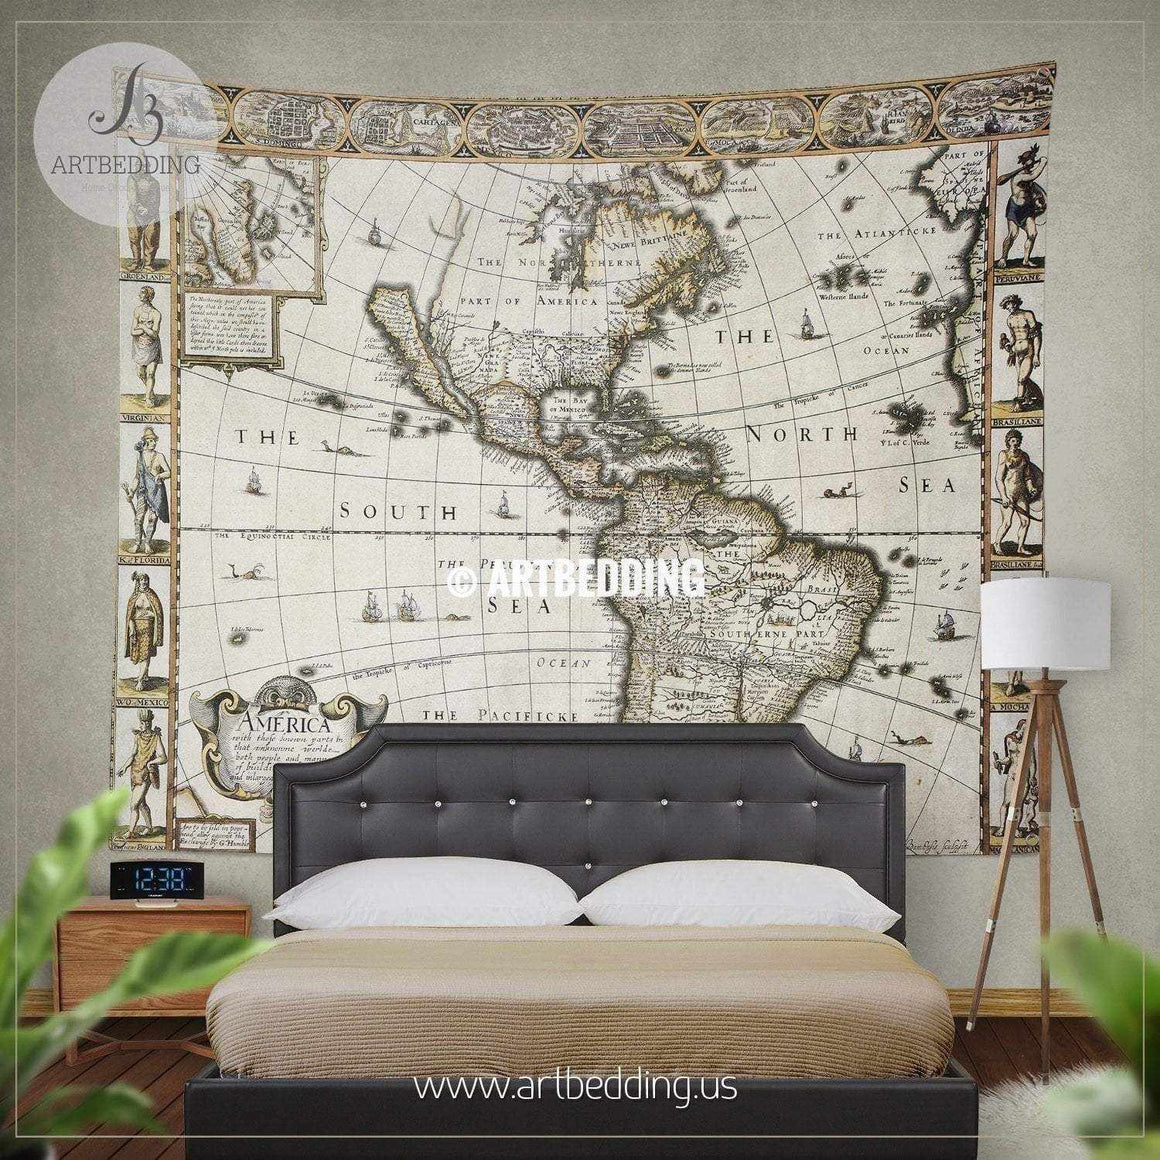 America 1627 old map wall tapestry, vintage interior world map wall hanging, old map wall decor, vintage map wall art print Tapestry